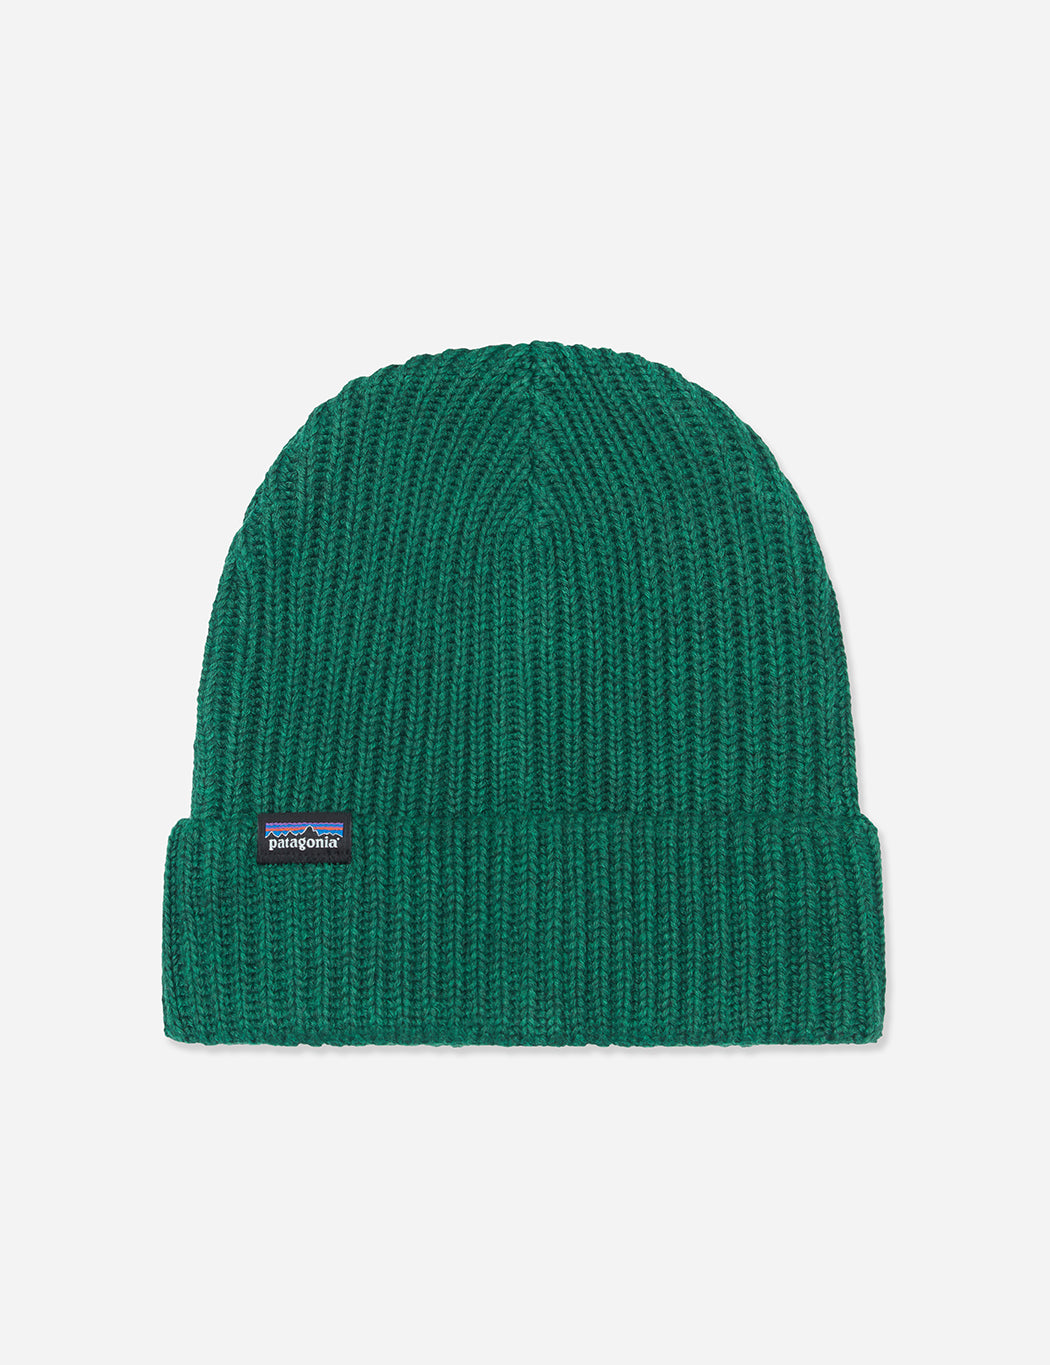 Patagonia Fisherman s Rolled Beanie Hat - Micro Green  051230a3a32